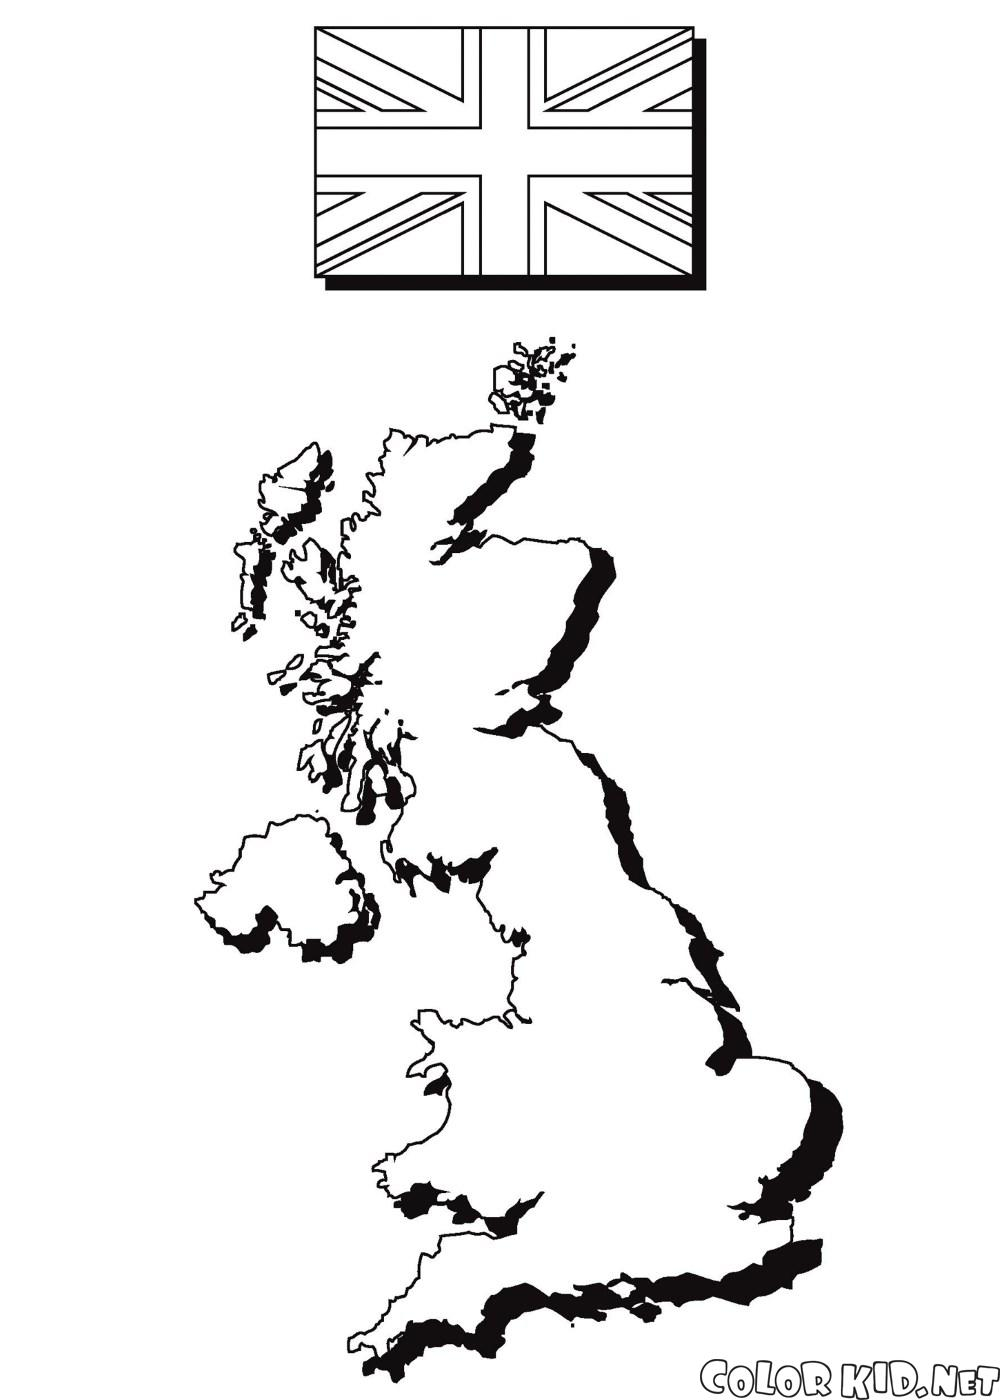 england map coloring pages - photo#10